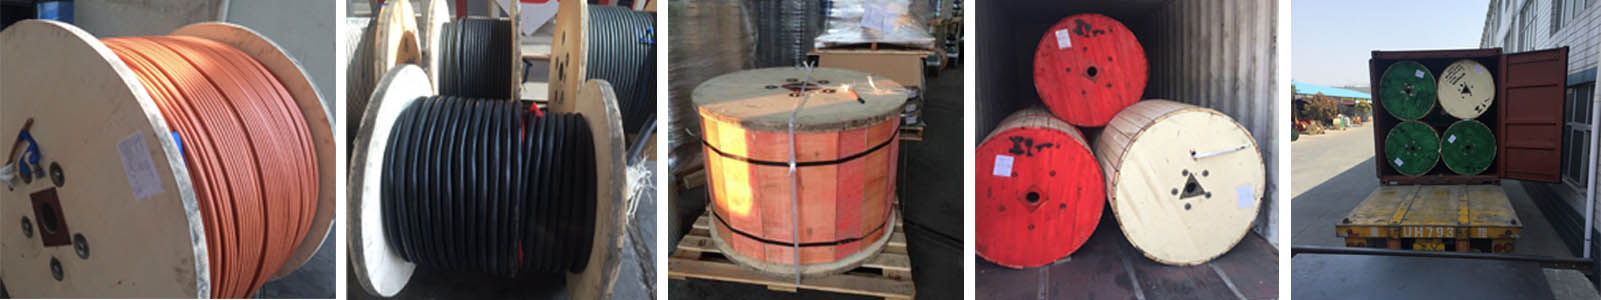 packaging 70mm2 welding cable singapore